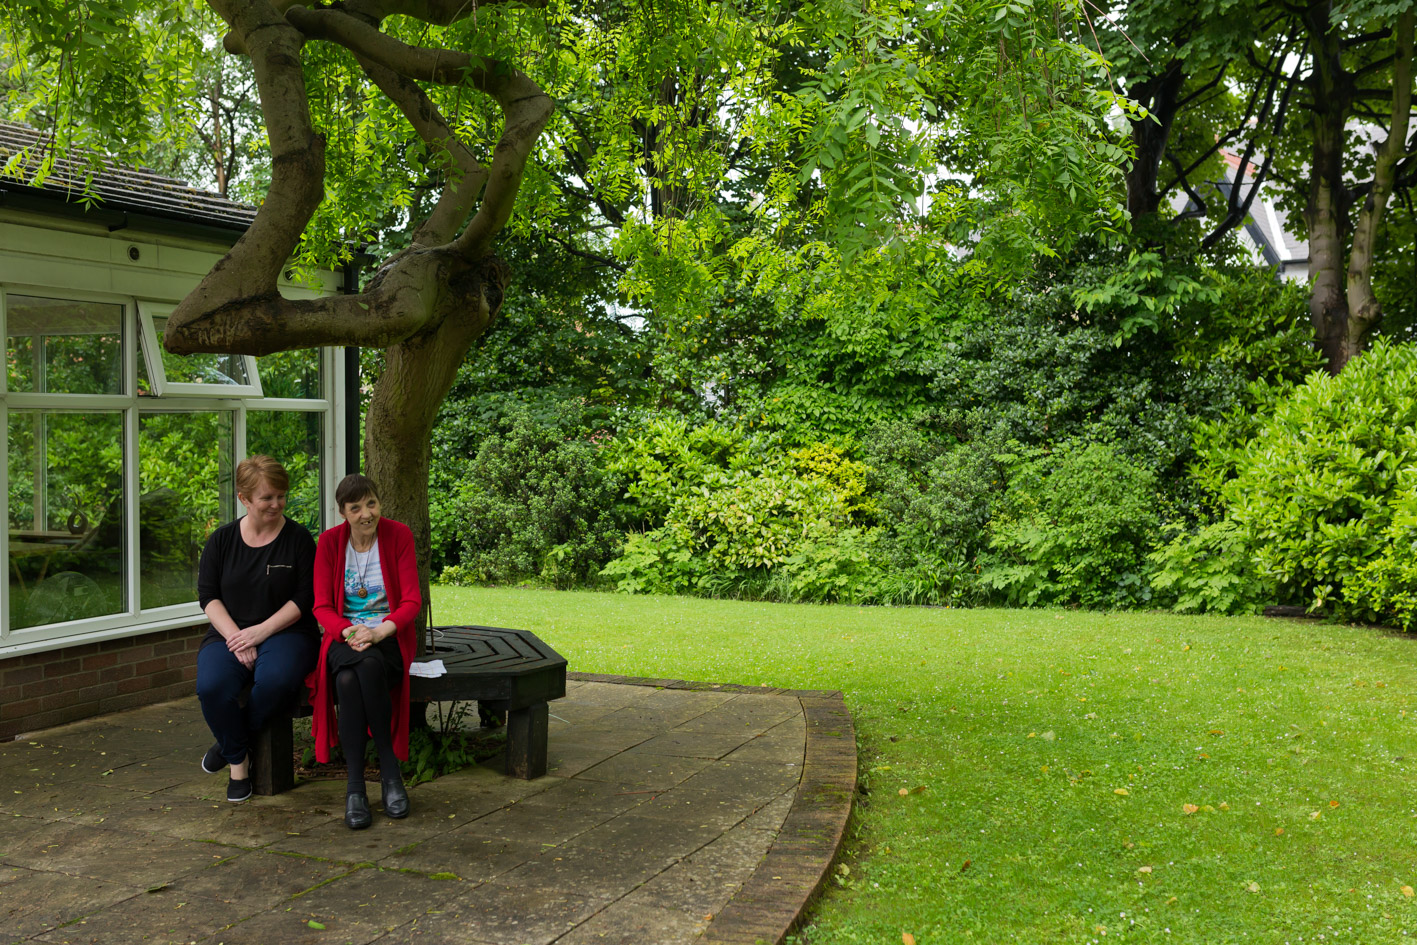 Shaftsbury House, garden, ladies sitting under tree, learning disability